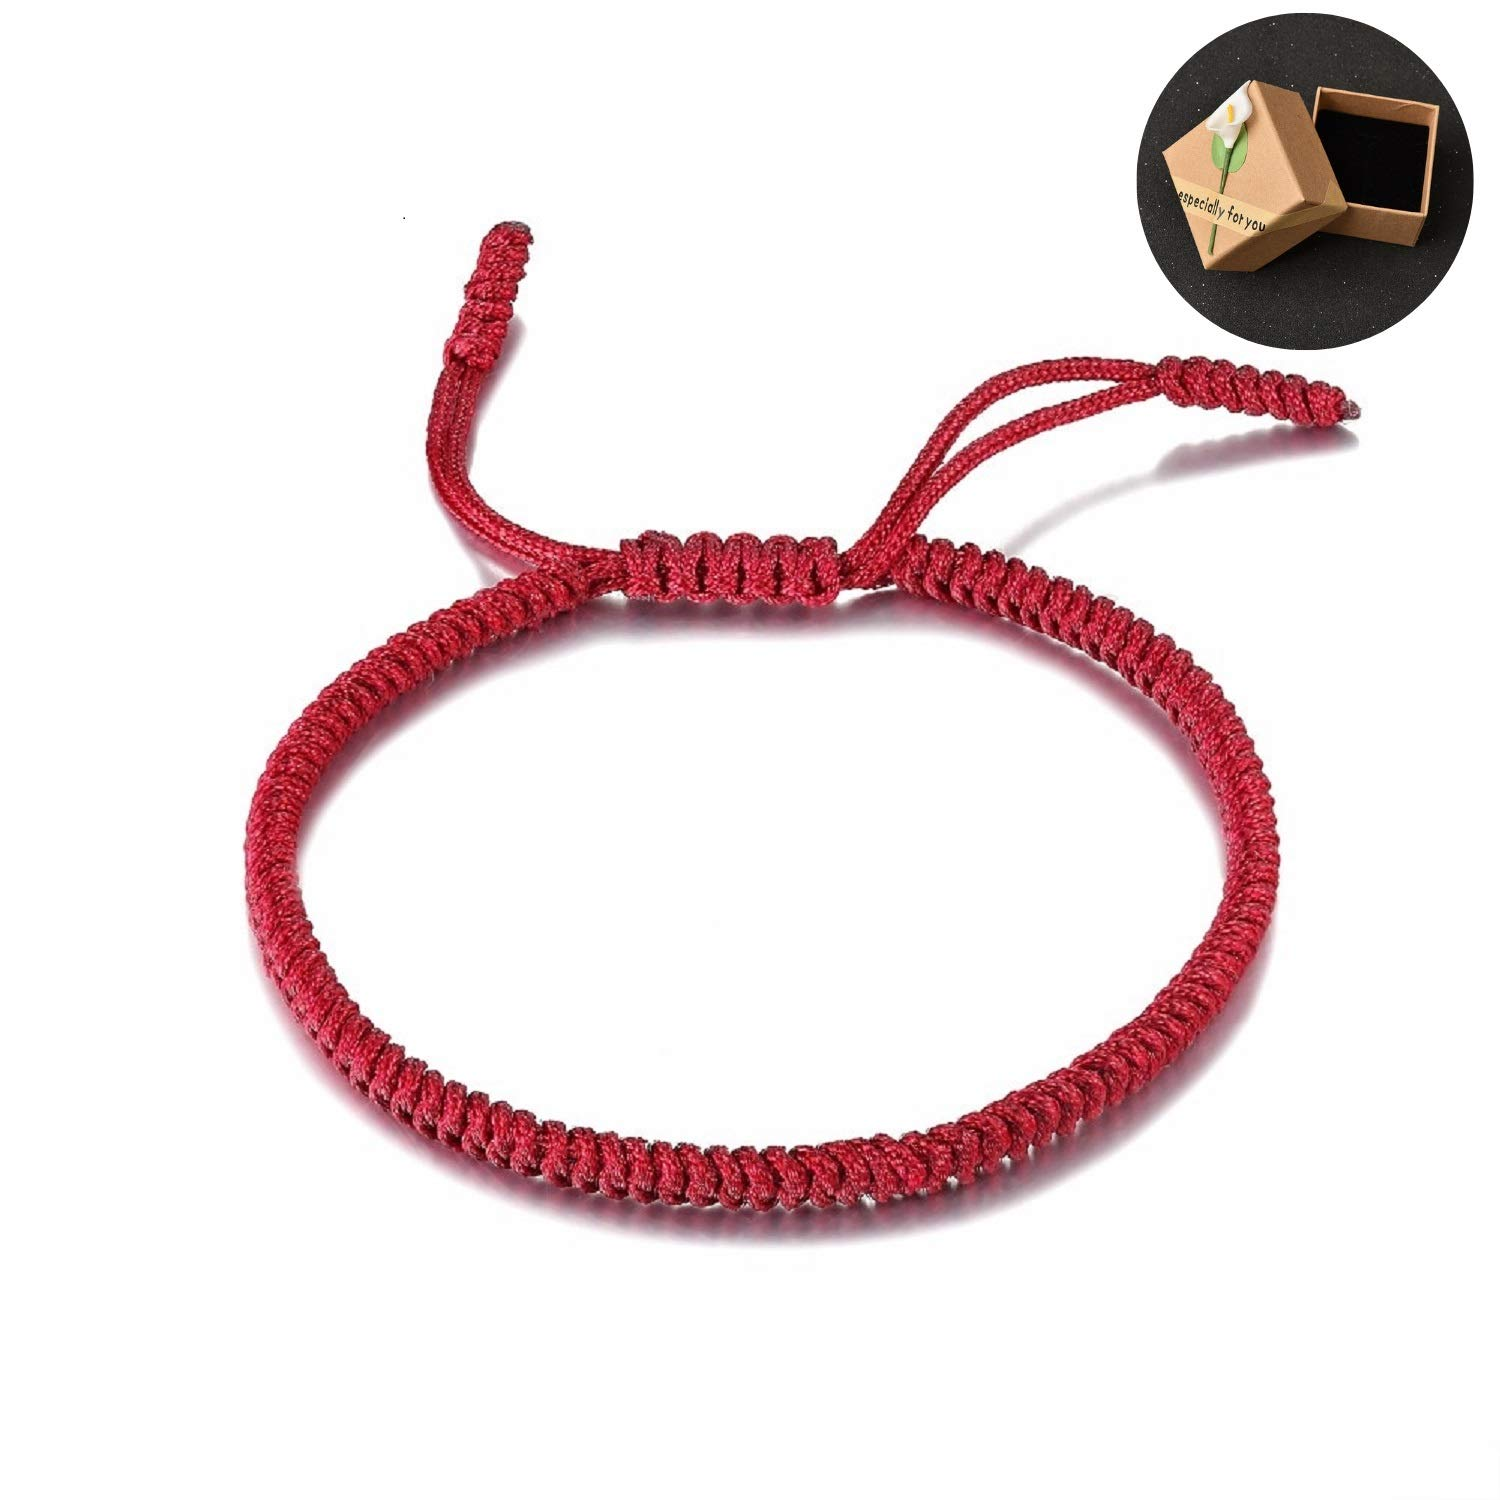 Handmade Tibetan Lucky Bracelet Woven Green Deep Red From Heart Bracelets Mens Womens Lucky String Bracelets For Protection and Valentine Gift Couple Gift Box by MoonArts